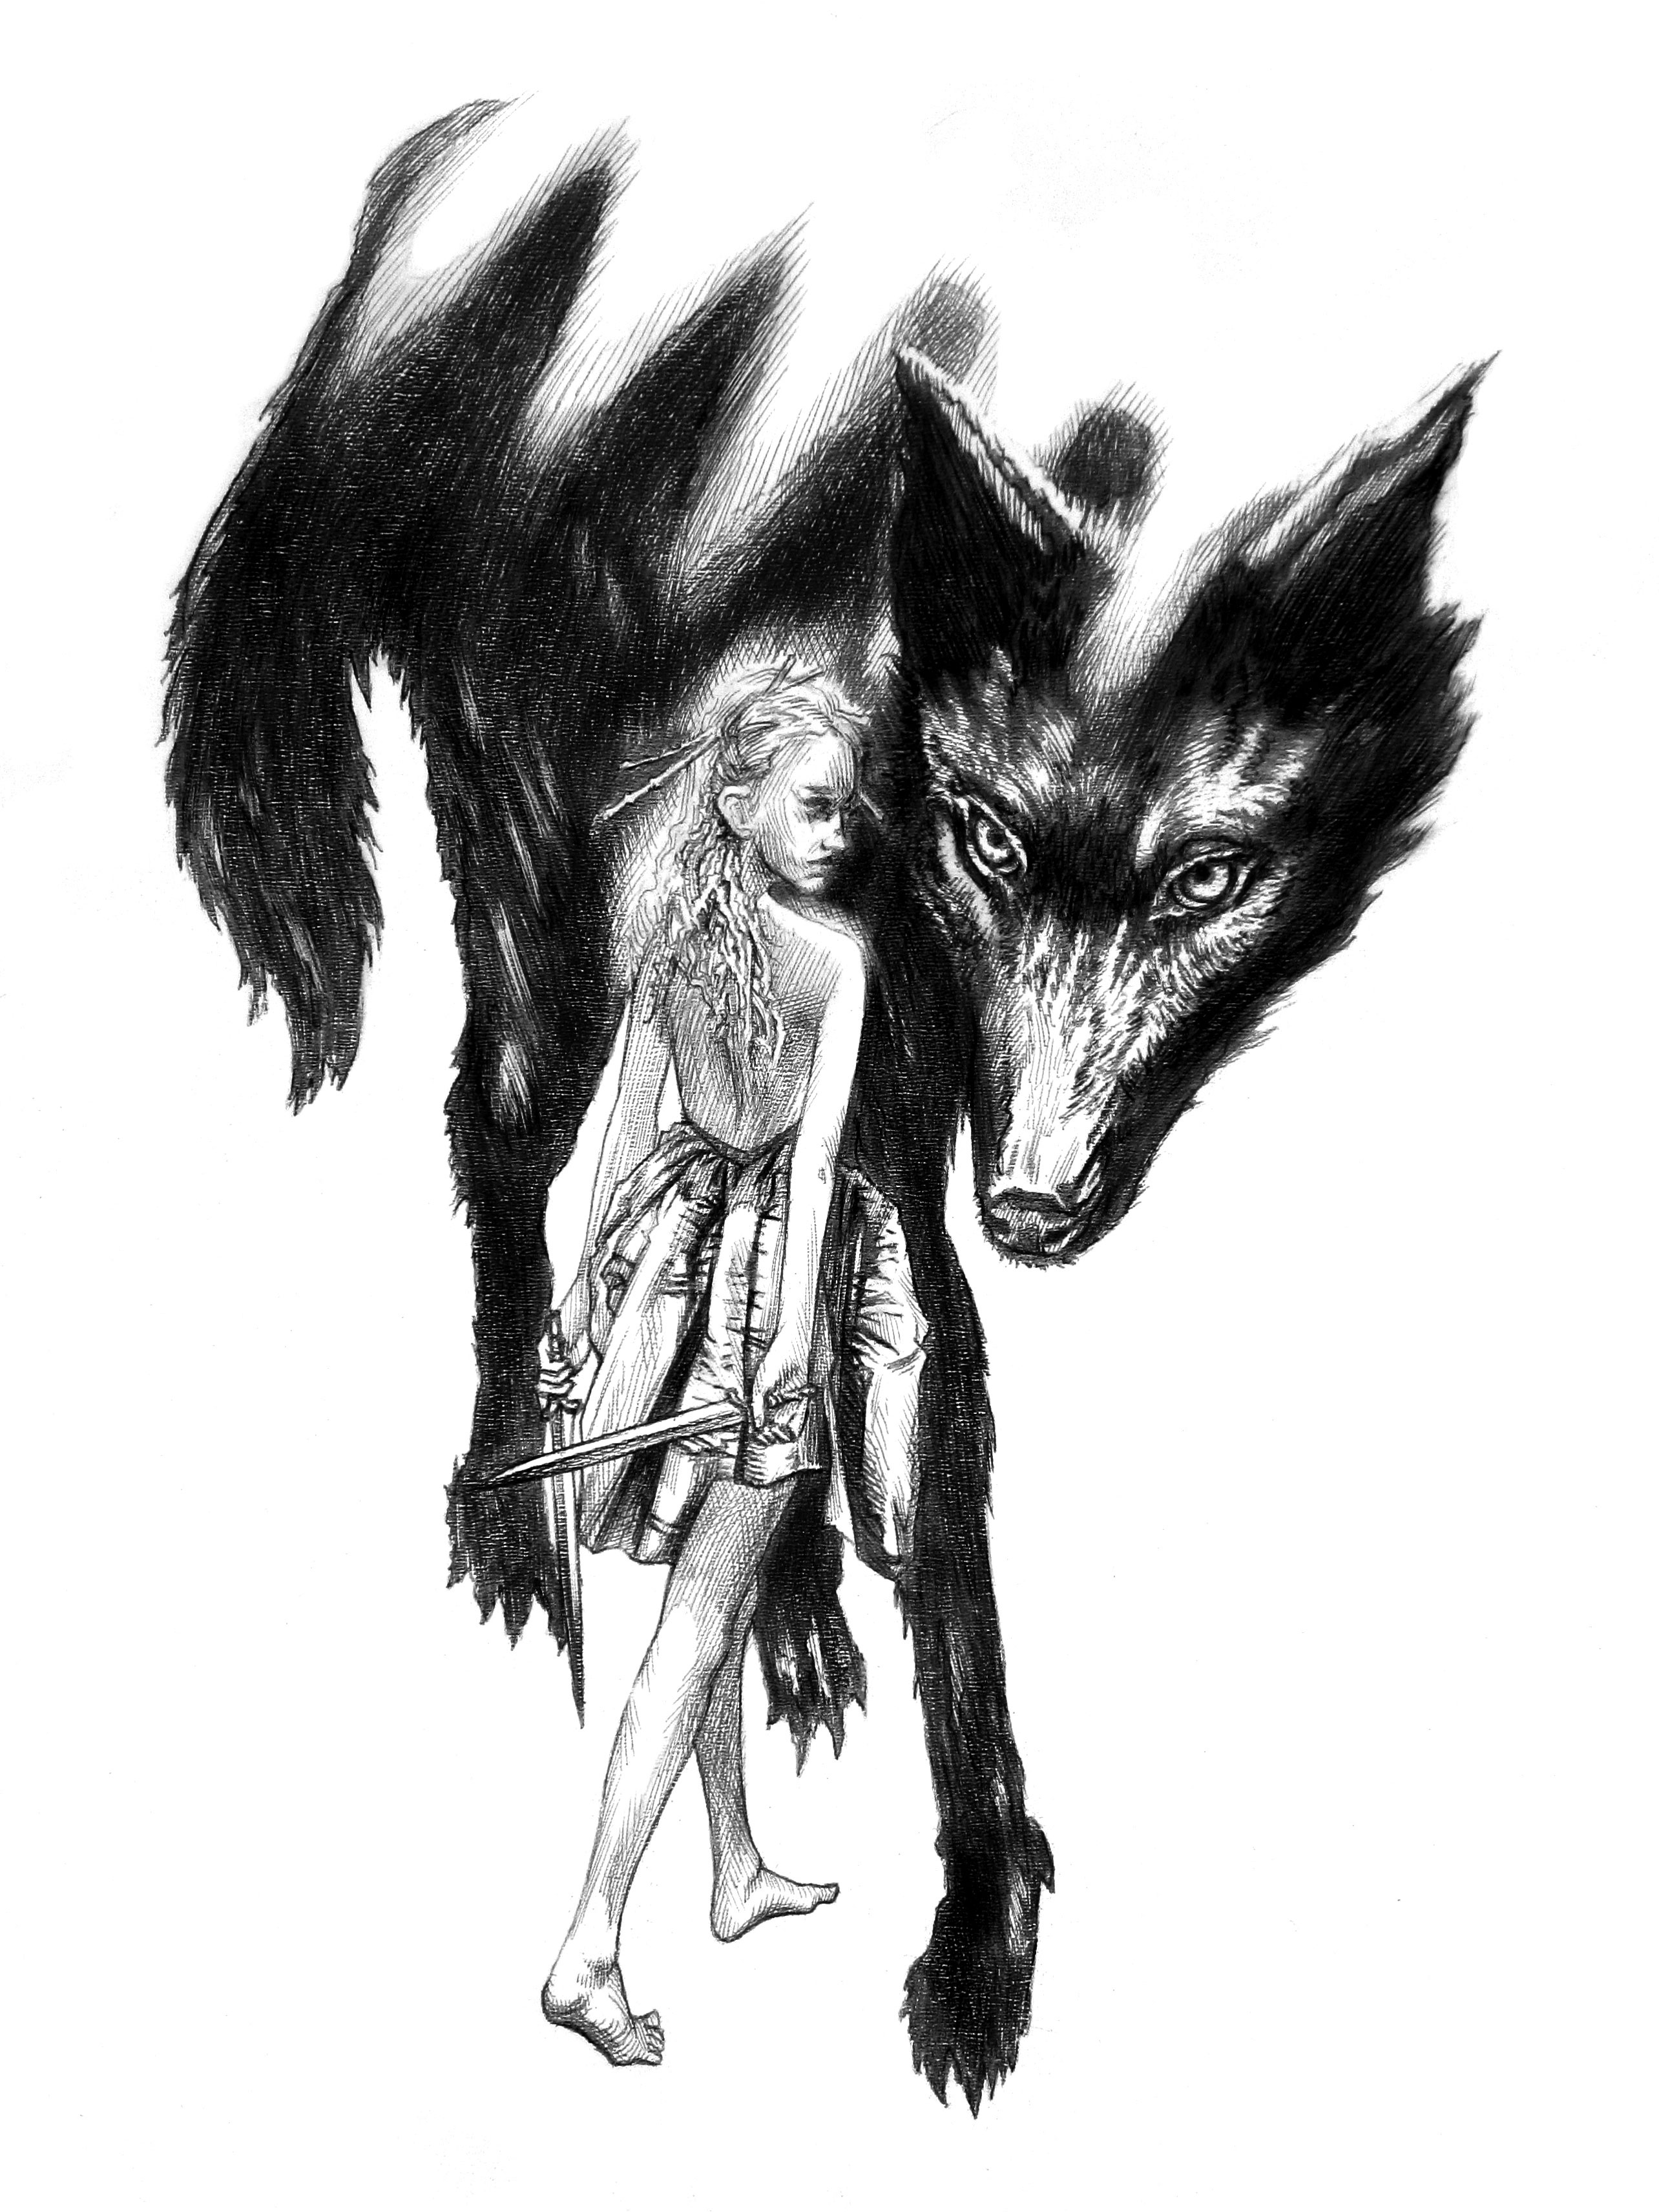 A pencil drawing of a young woman and a dire wolf by Craig Maher.